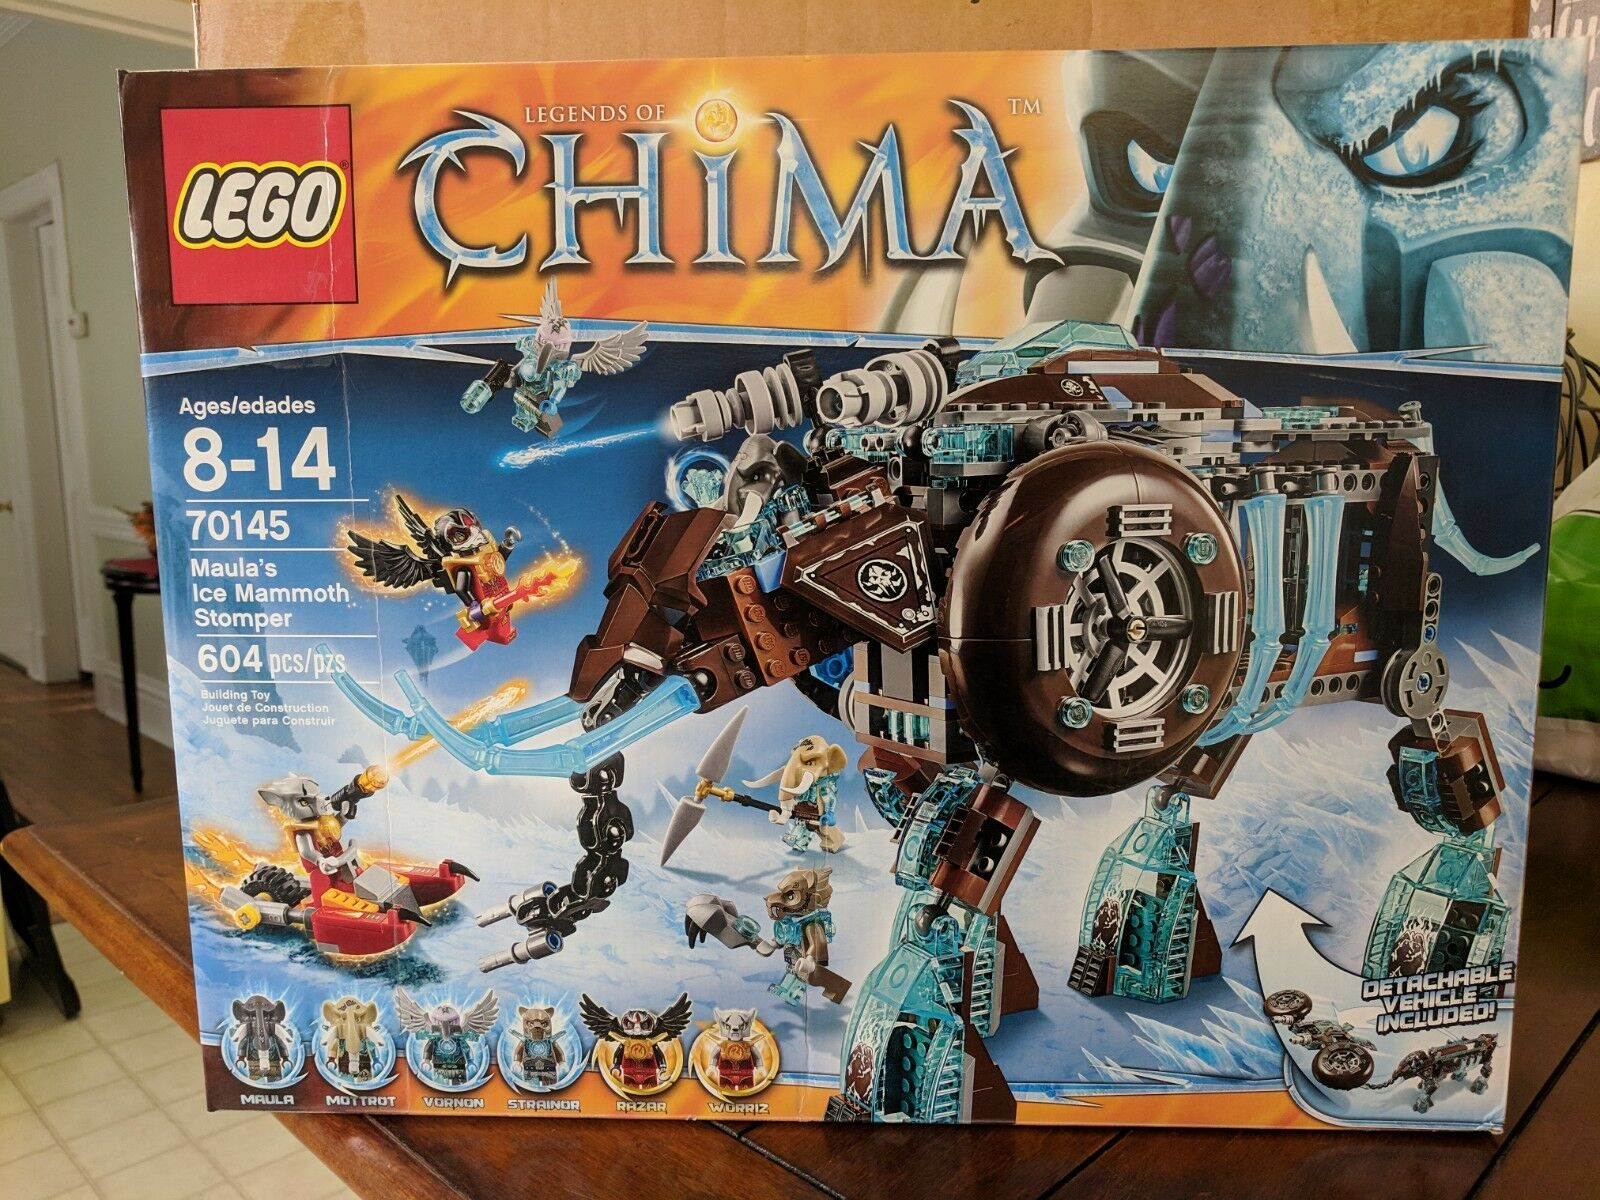 Ean Fire Phoenix Of Chima Lego 70146Flying 5702015124065 Legends fY6yb7g